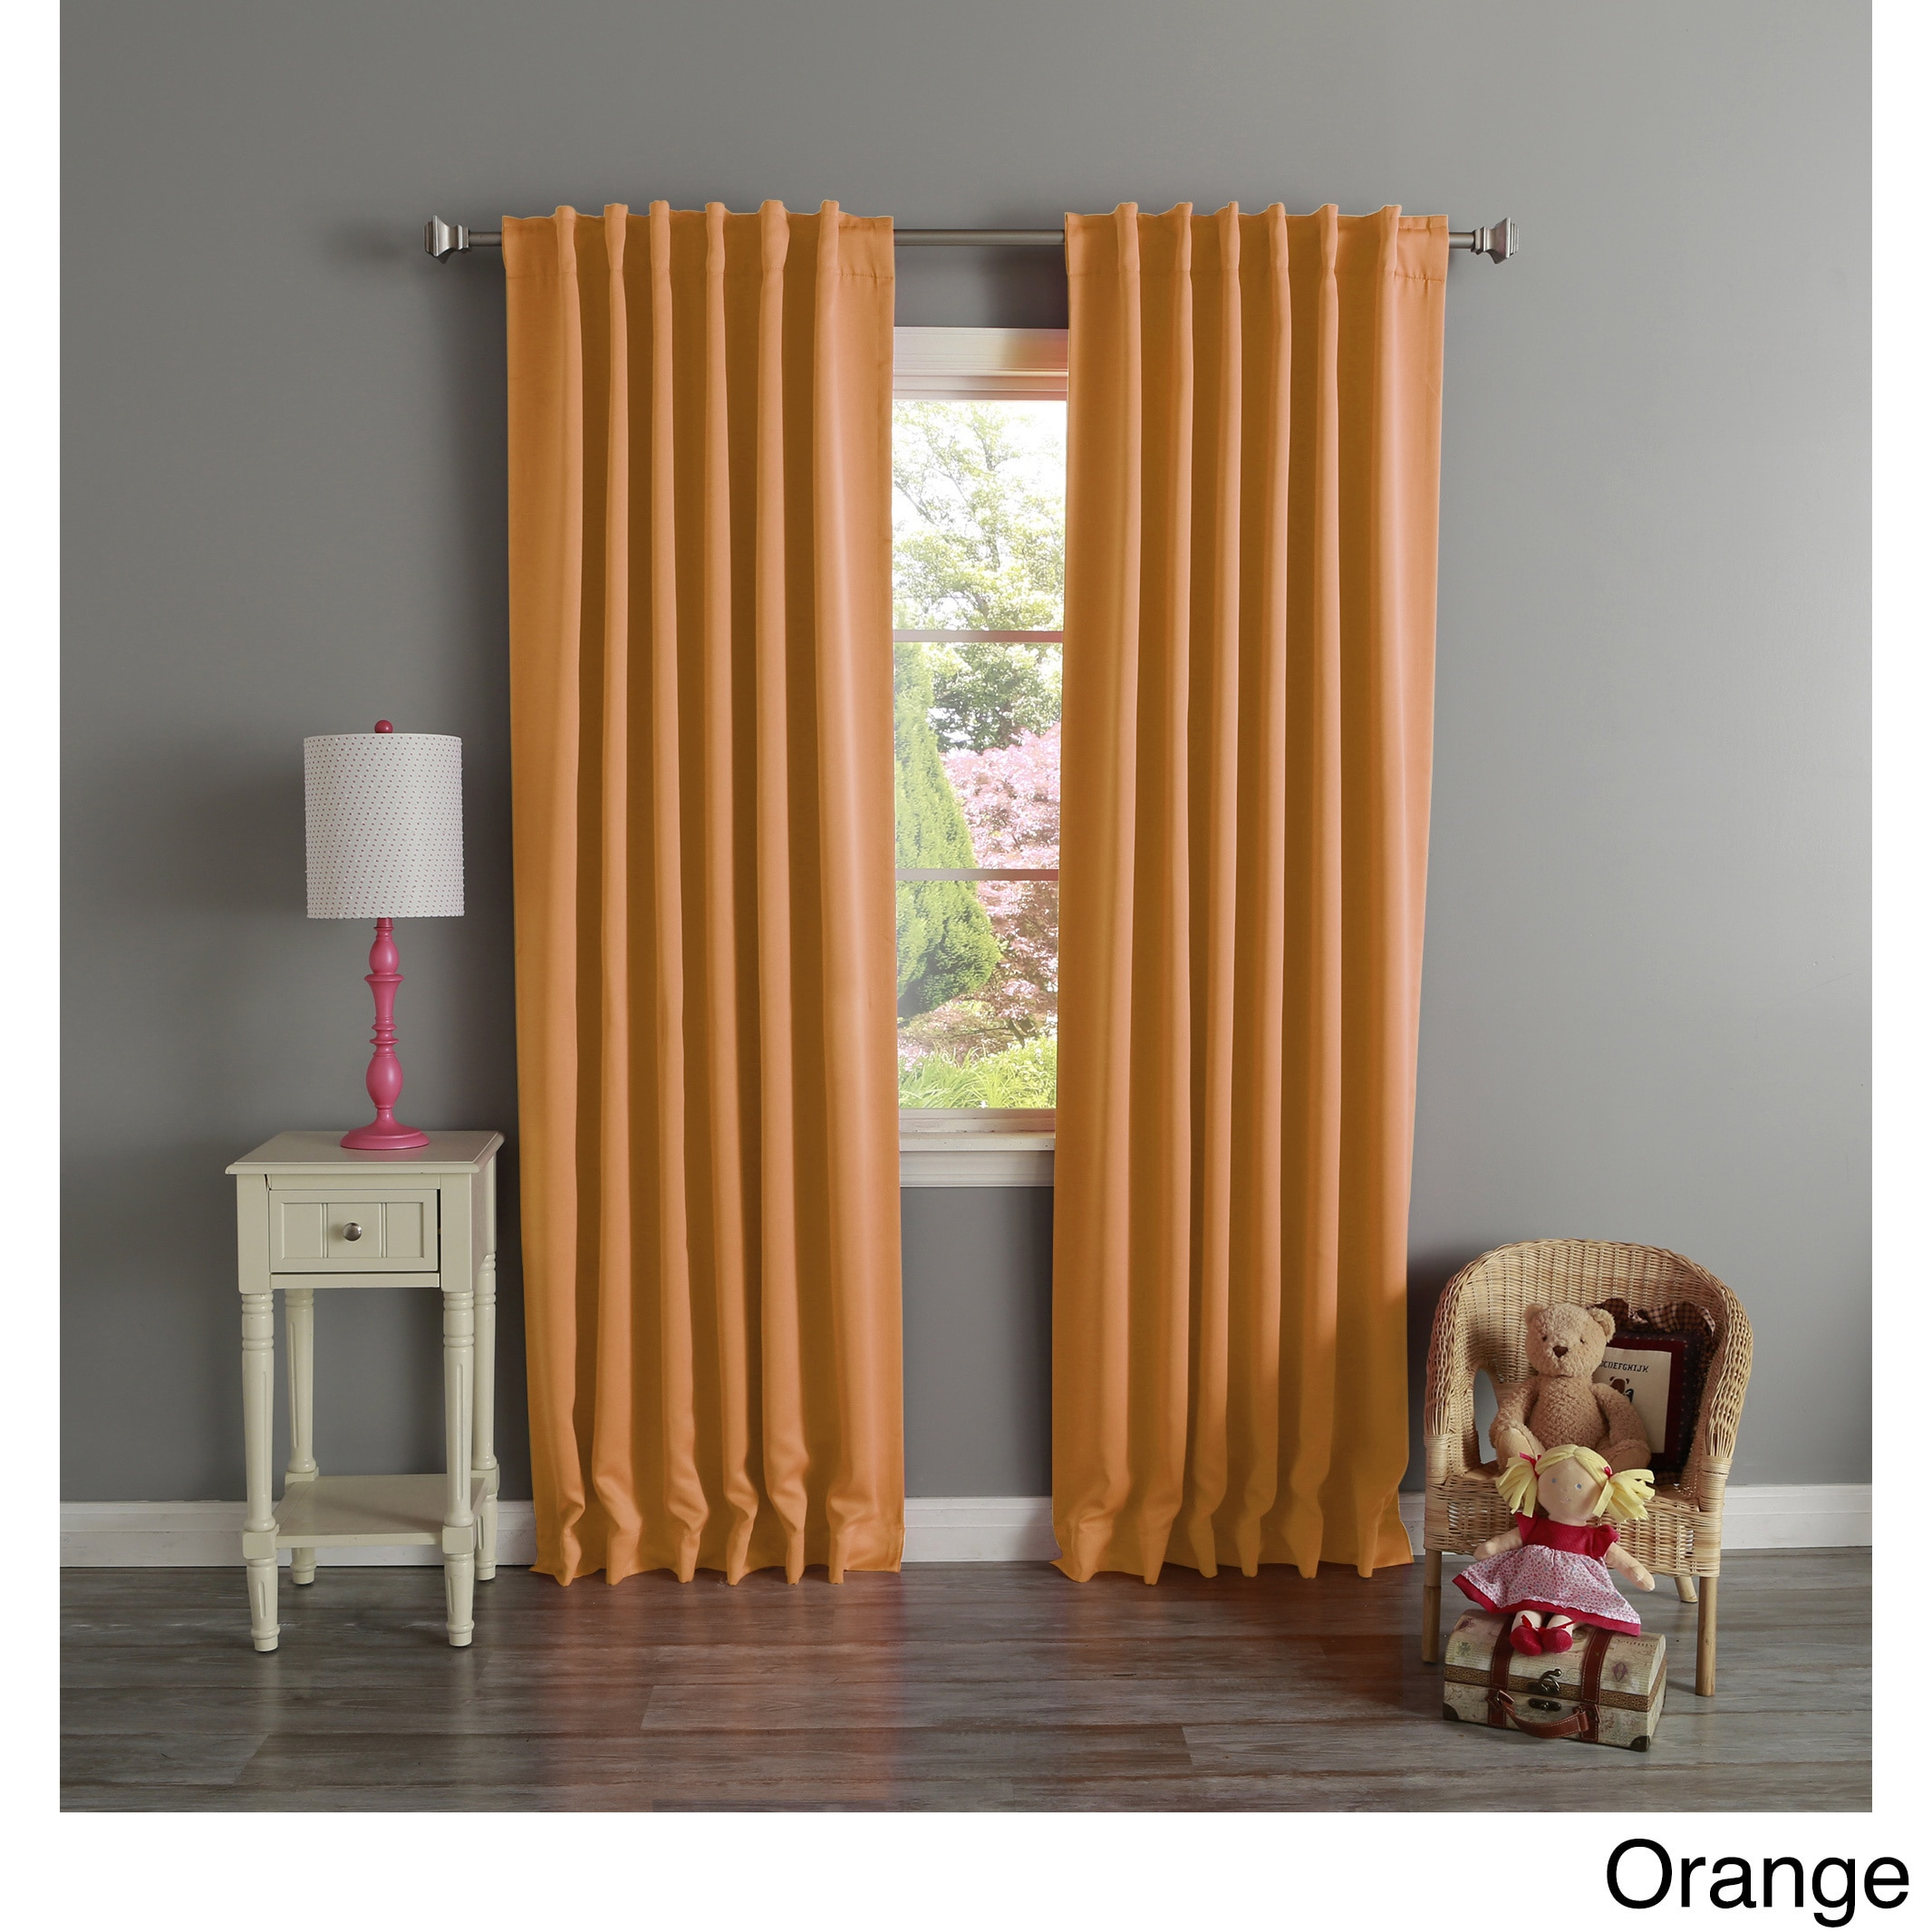 Aurora Home Thermal Rod Pocket 96 Inch Blackout Curtain Panel Pair Within Thermal Rod Pocket Blackout Curtain Panel Pairs (View 8 of 30)